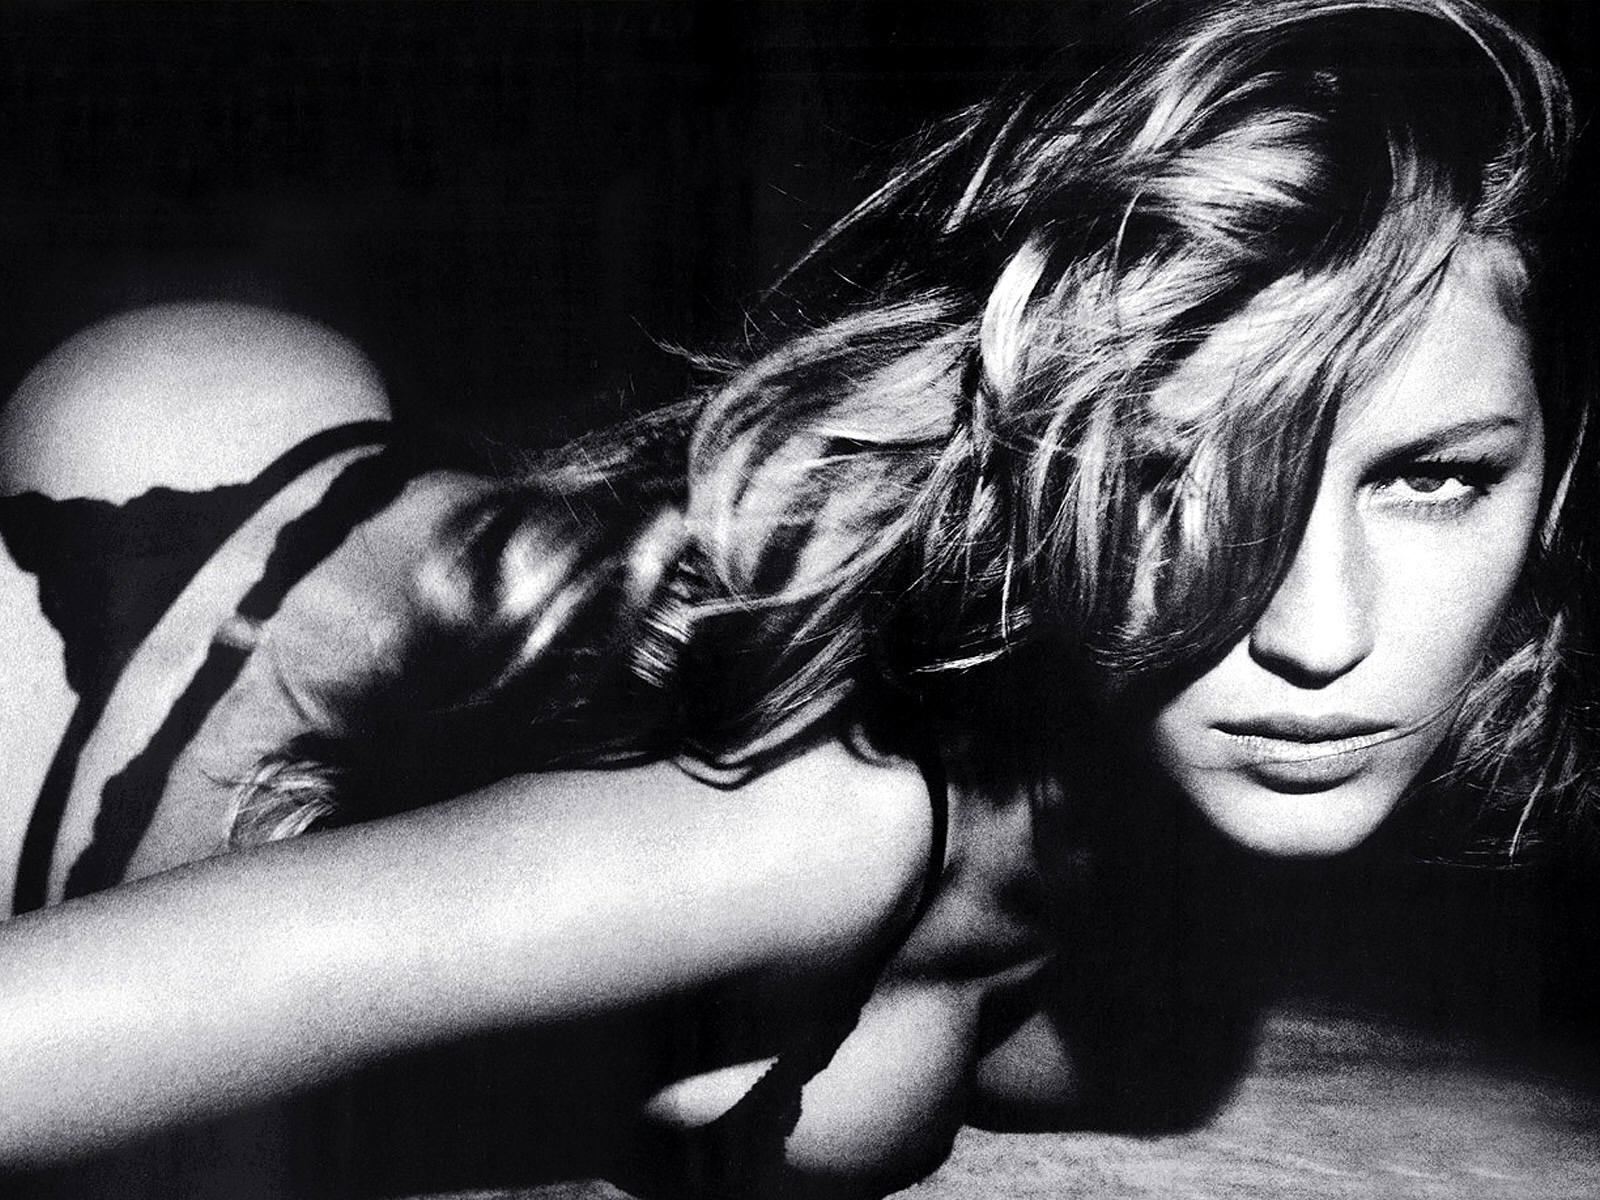 Gisele-Bundchen-Wallpapers-hot 8